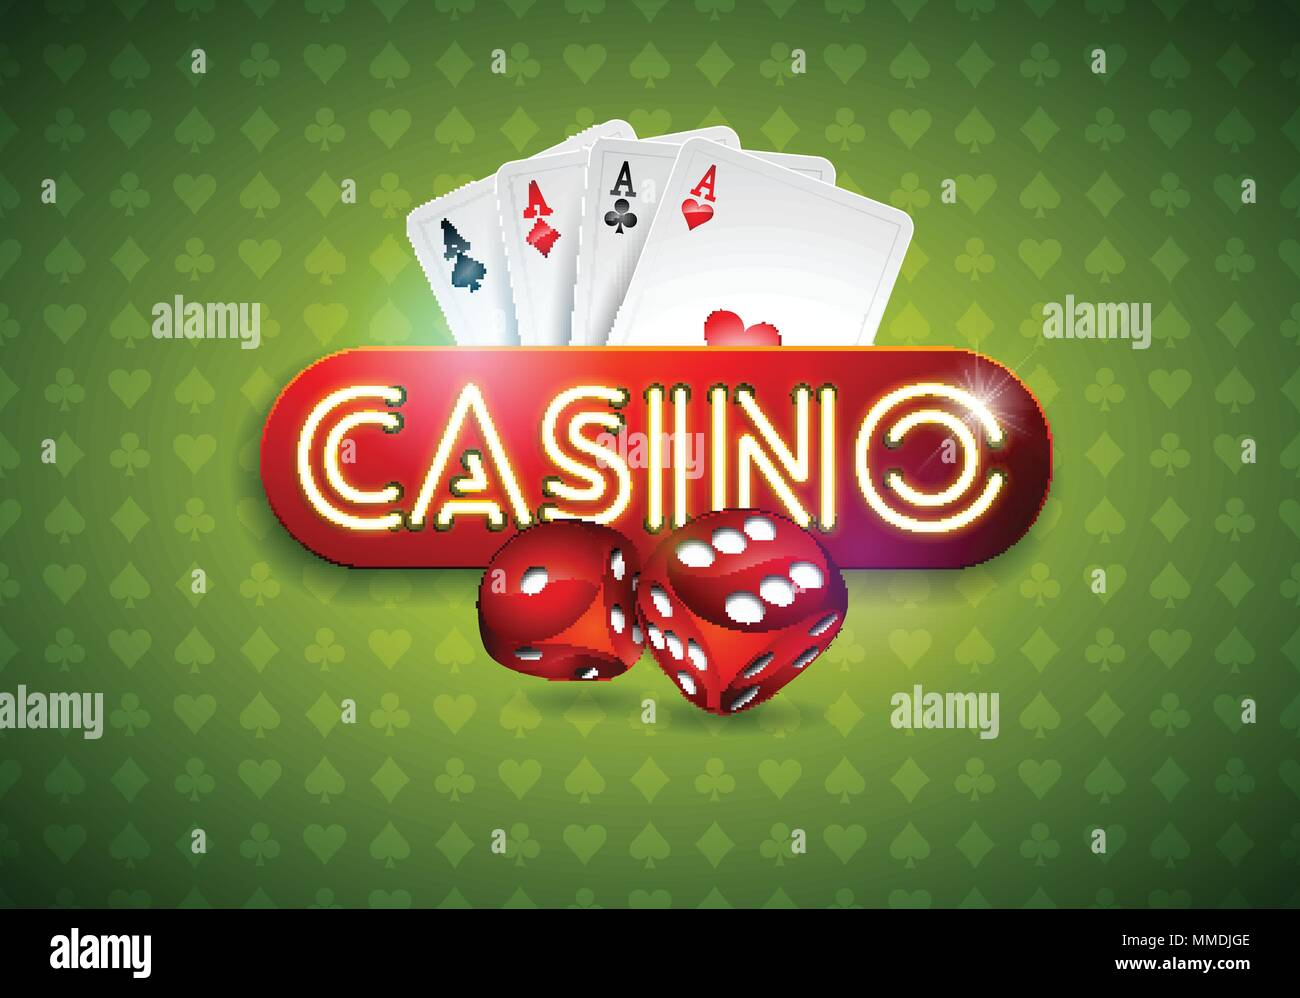 Vector Illustration On A Casino Theme With Shiny Neon Light Letter And Poker Cards On Green Background Gambling Design For Greeting Card Poster Invitation Or Promo Banner Stock Vector Image Art